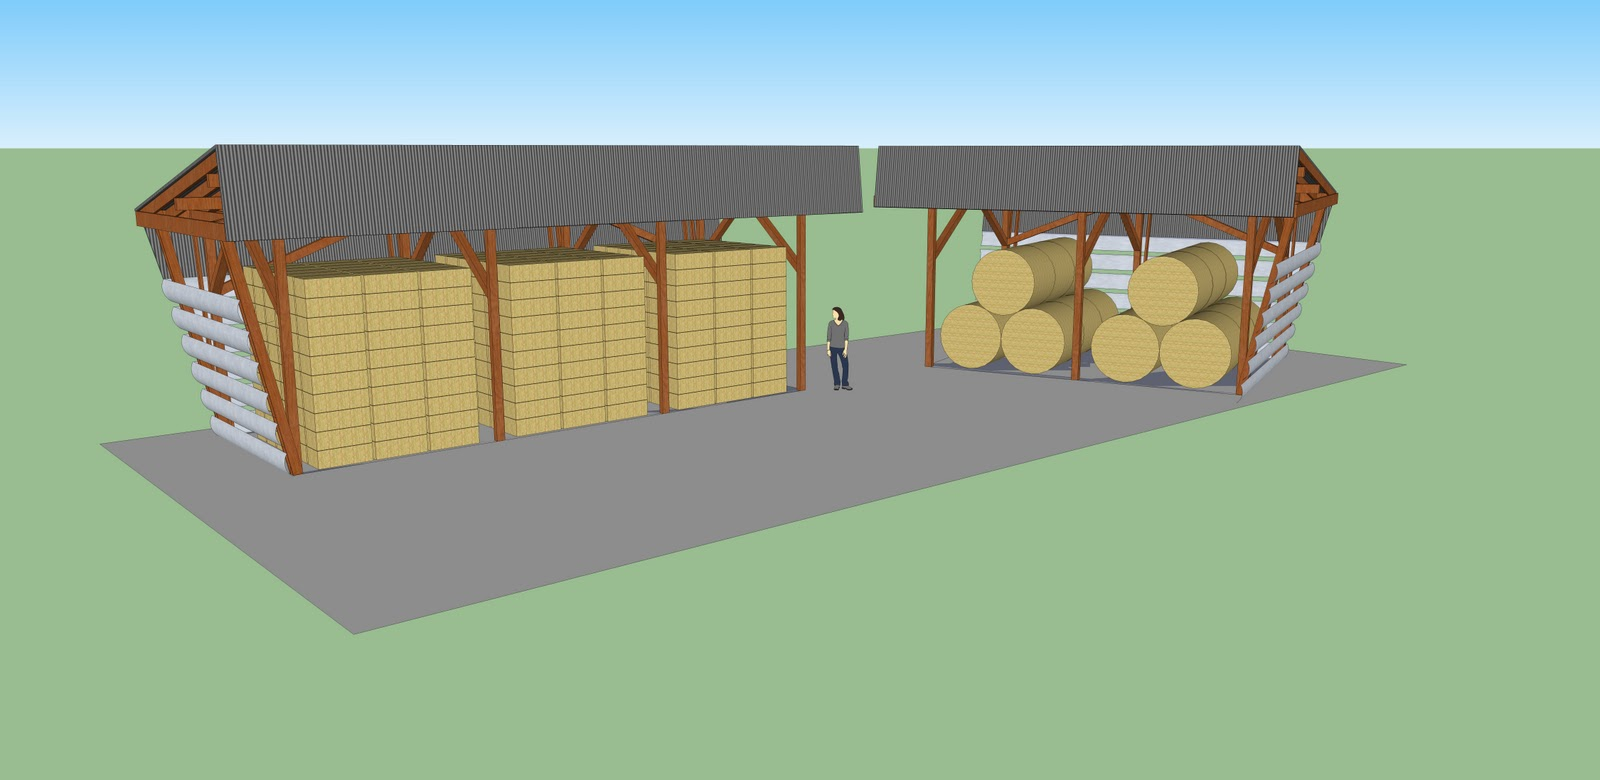 Barnstone design build 2 hay barn design 2 Hay design